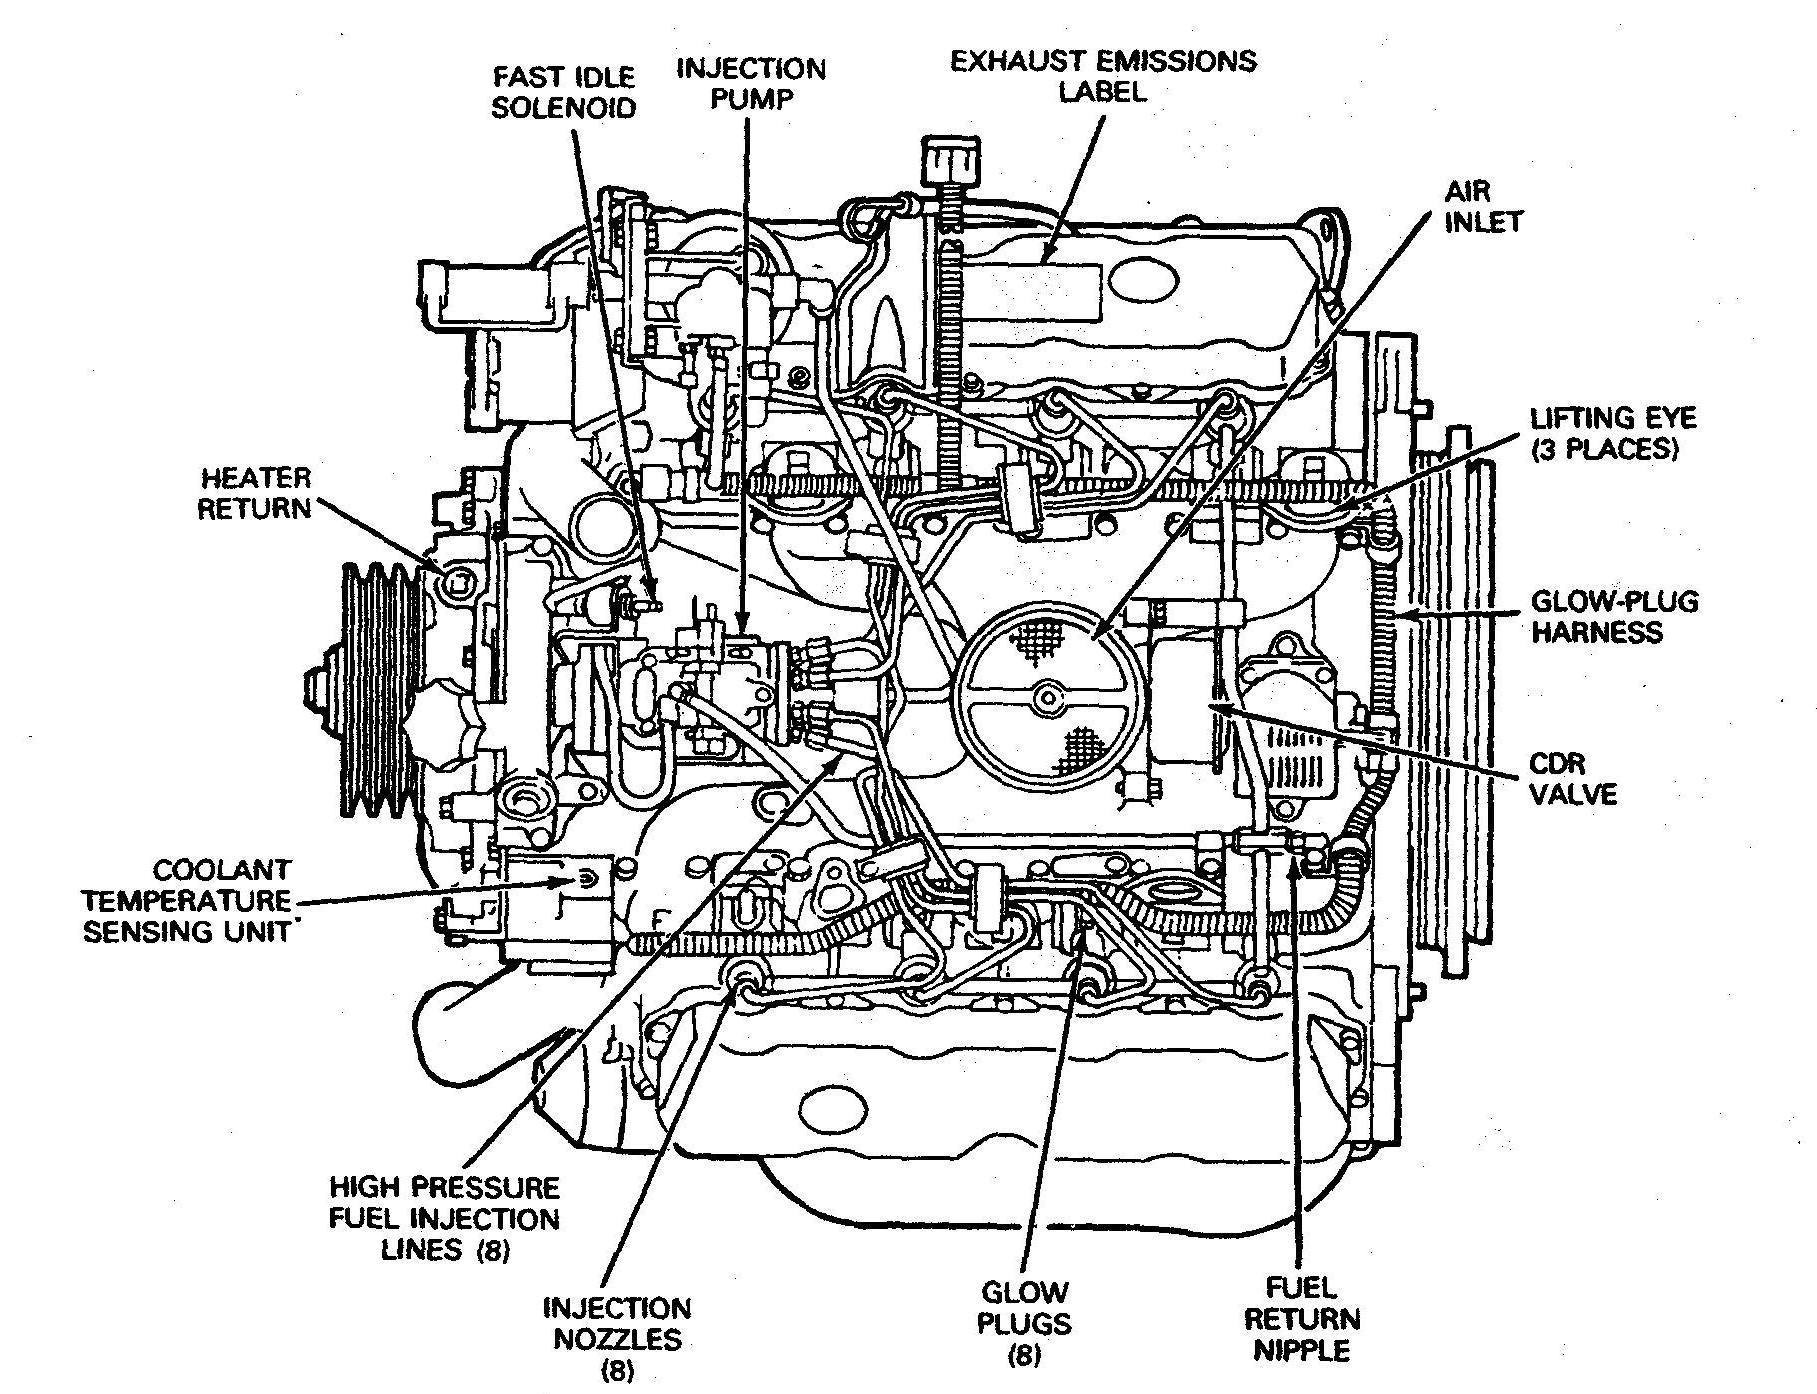 Engine Parts Diagram with Names Engine Parts Diagram Names Automotive Engine Diagram Wiring Diagrams Of Engine Parts Diagram with Names